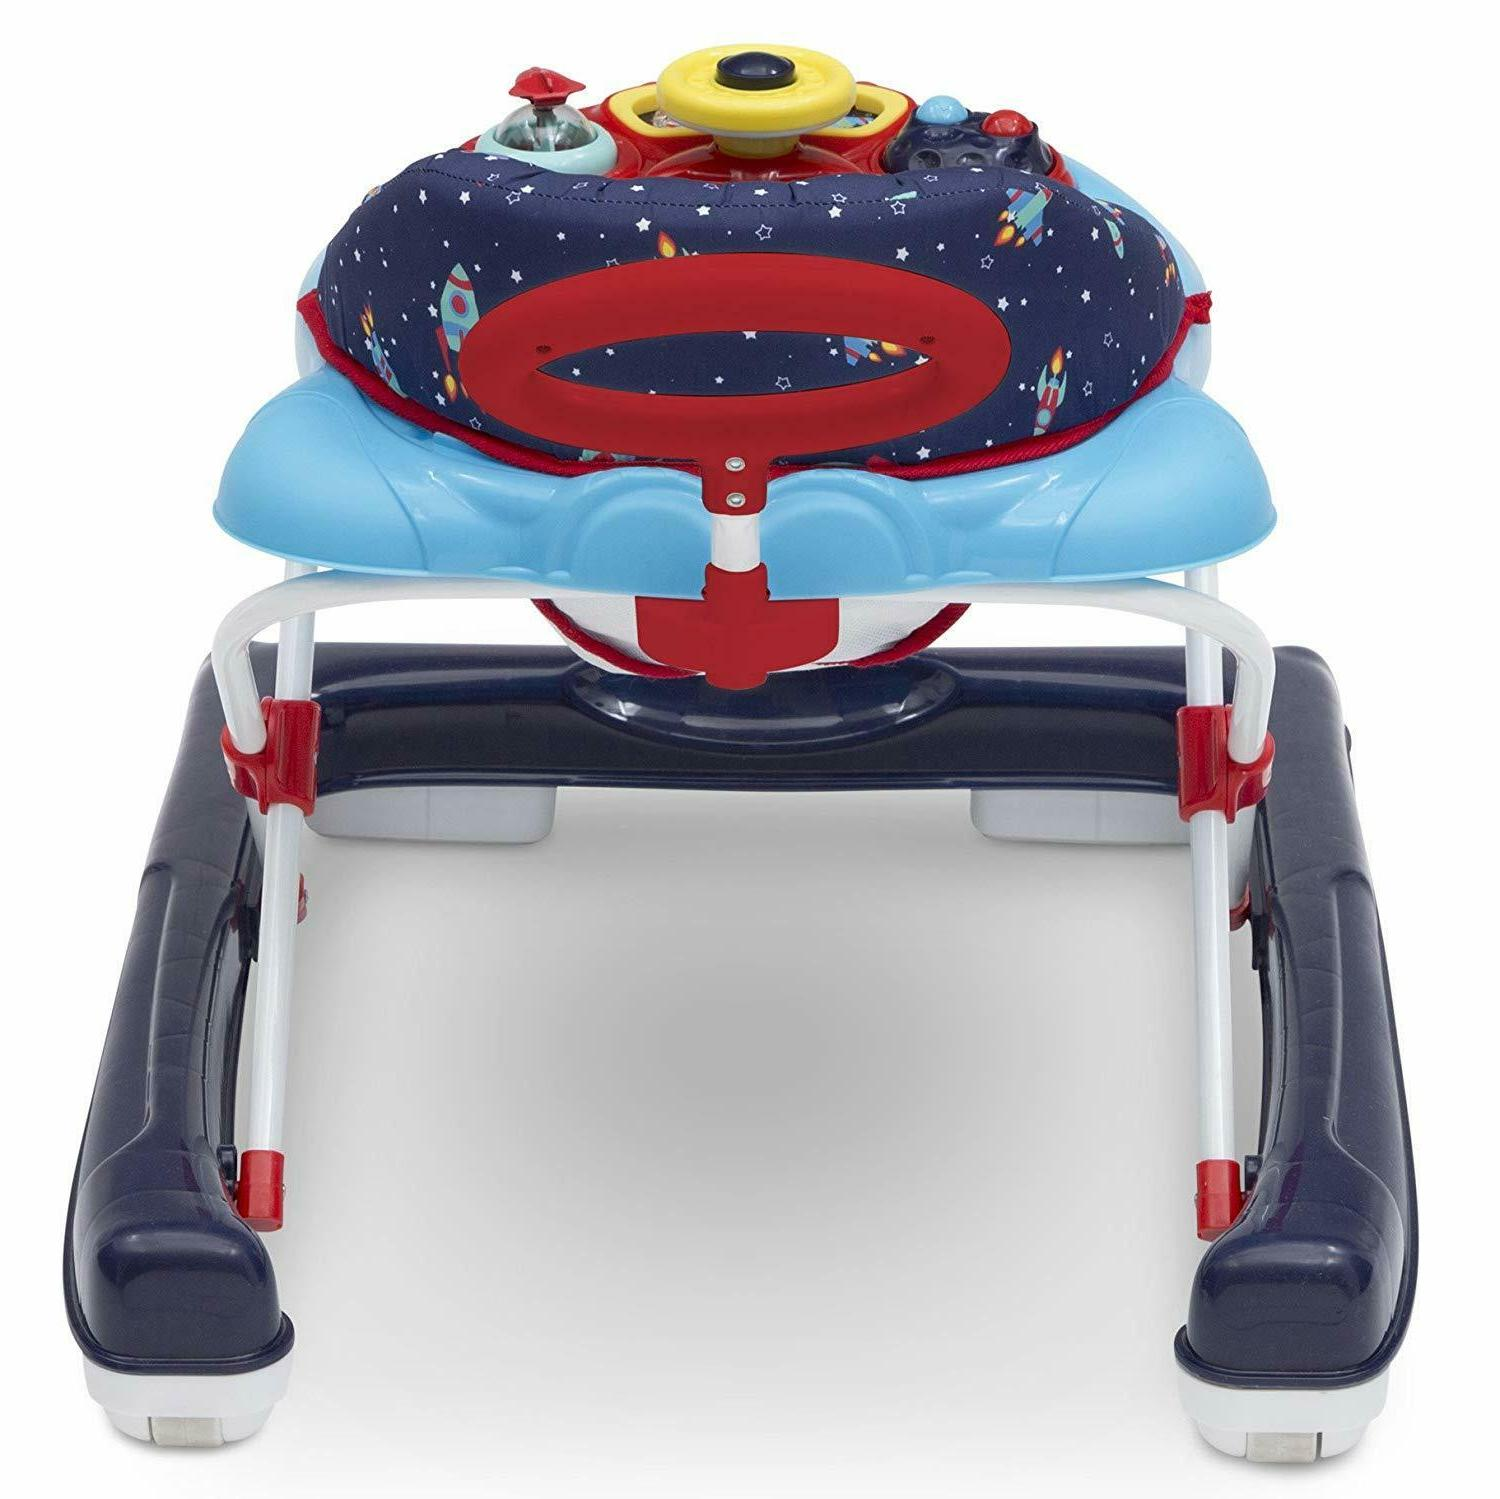 Delta First 2-in-1 Activity Off